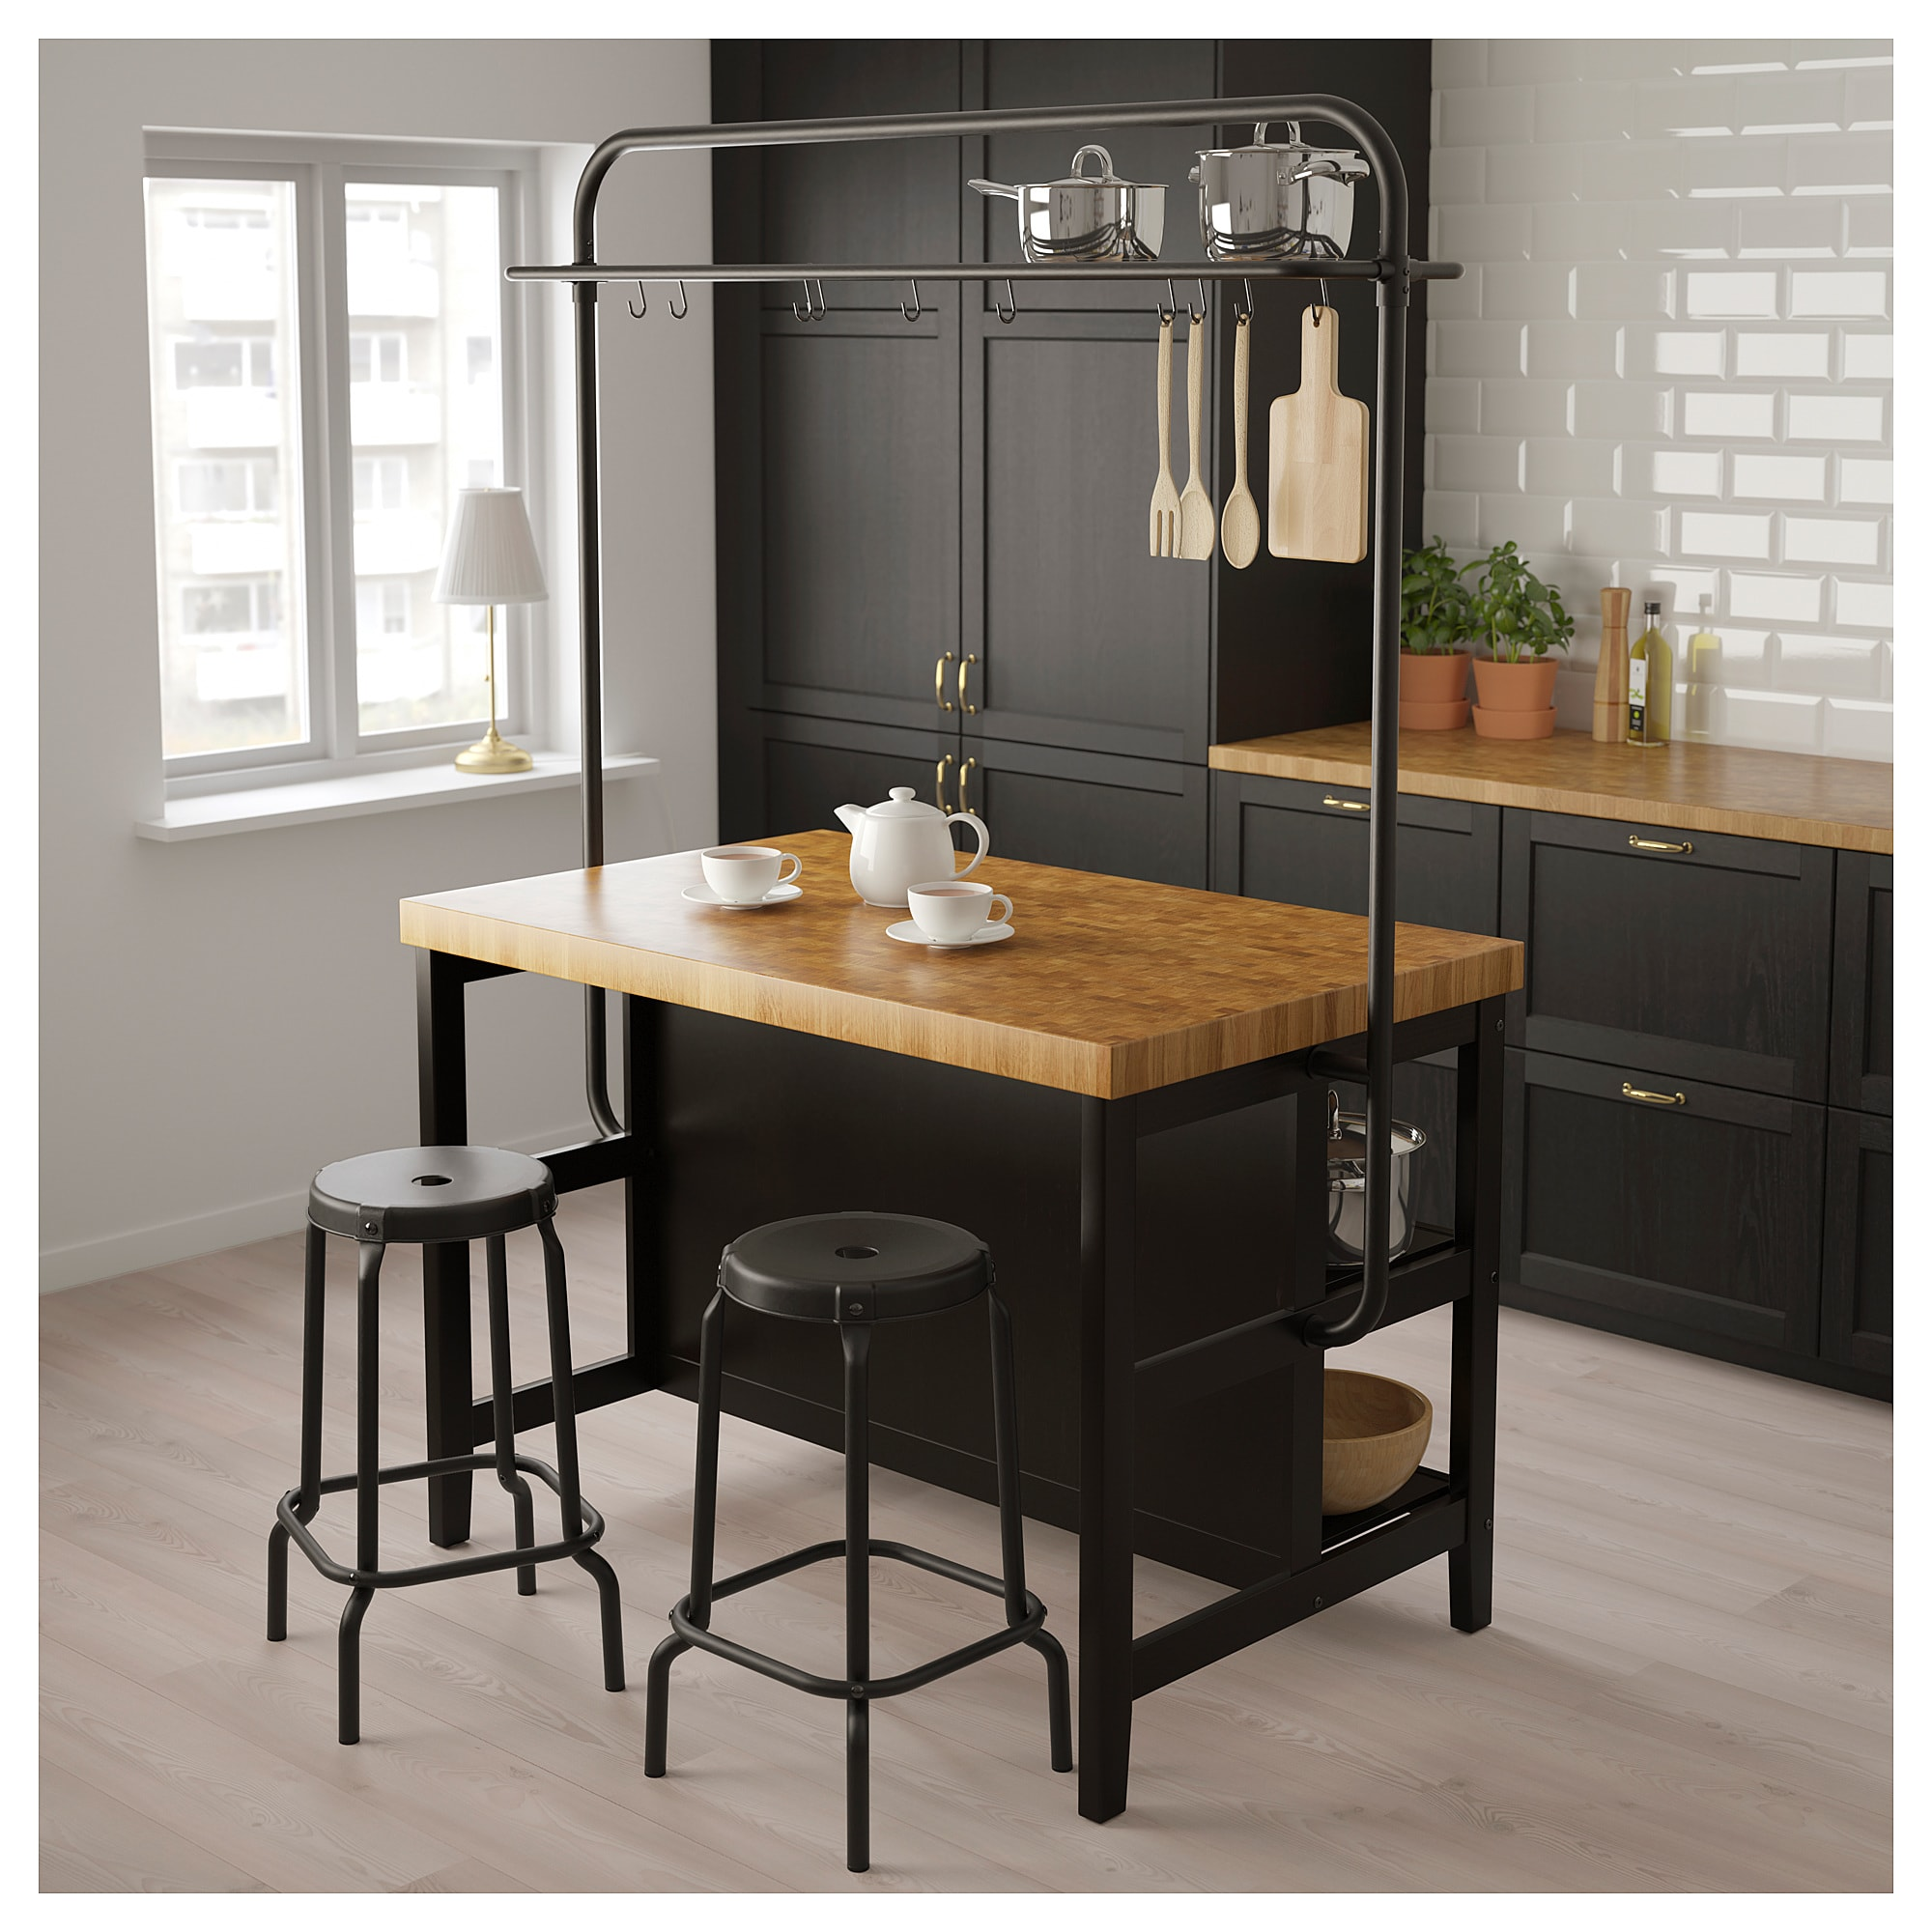 Ilot Central Cuisine Table A Manger: Kitchen Island With Rack, Black, Oak, 49 5/8x31 1/8x76